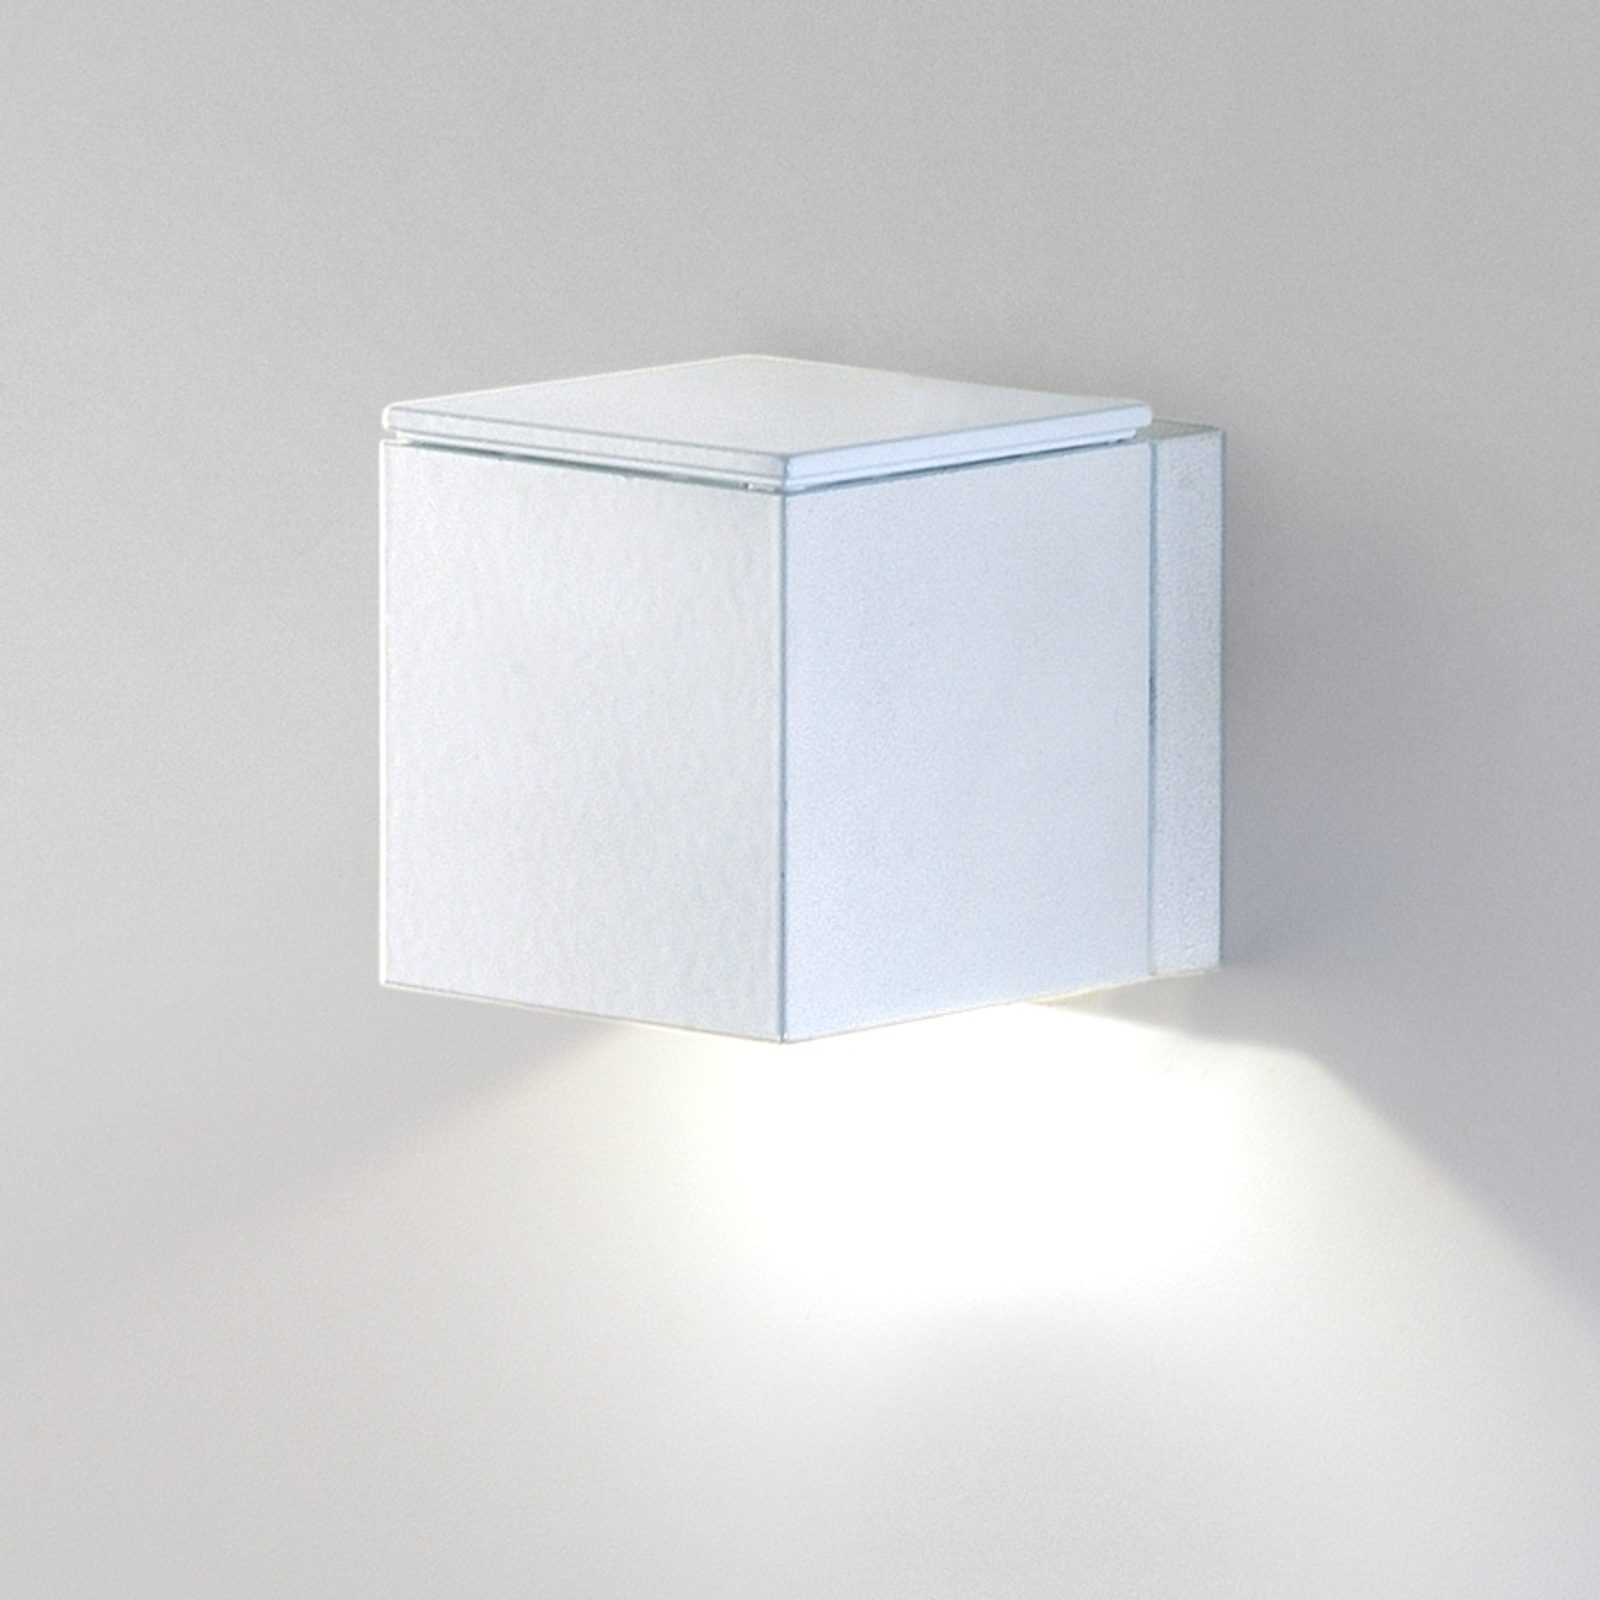 Applique à 1 lampe LED Dau Mini blanc